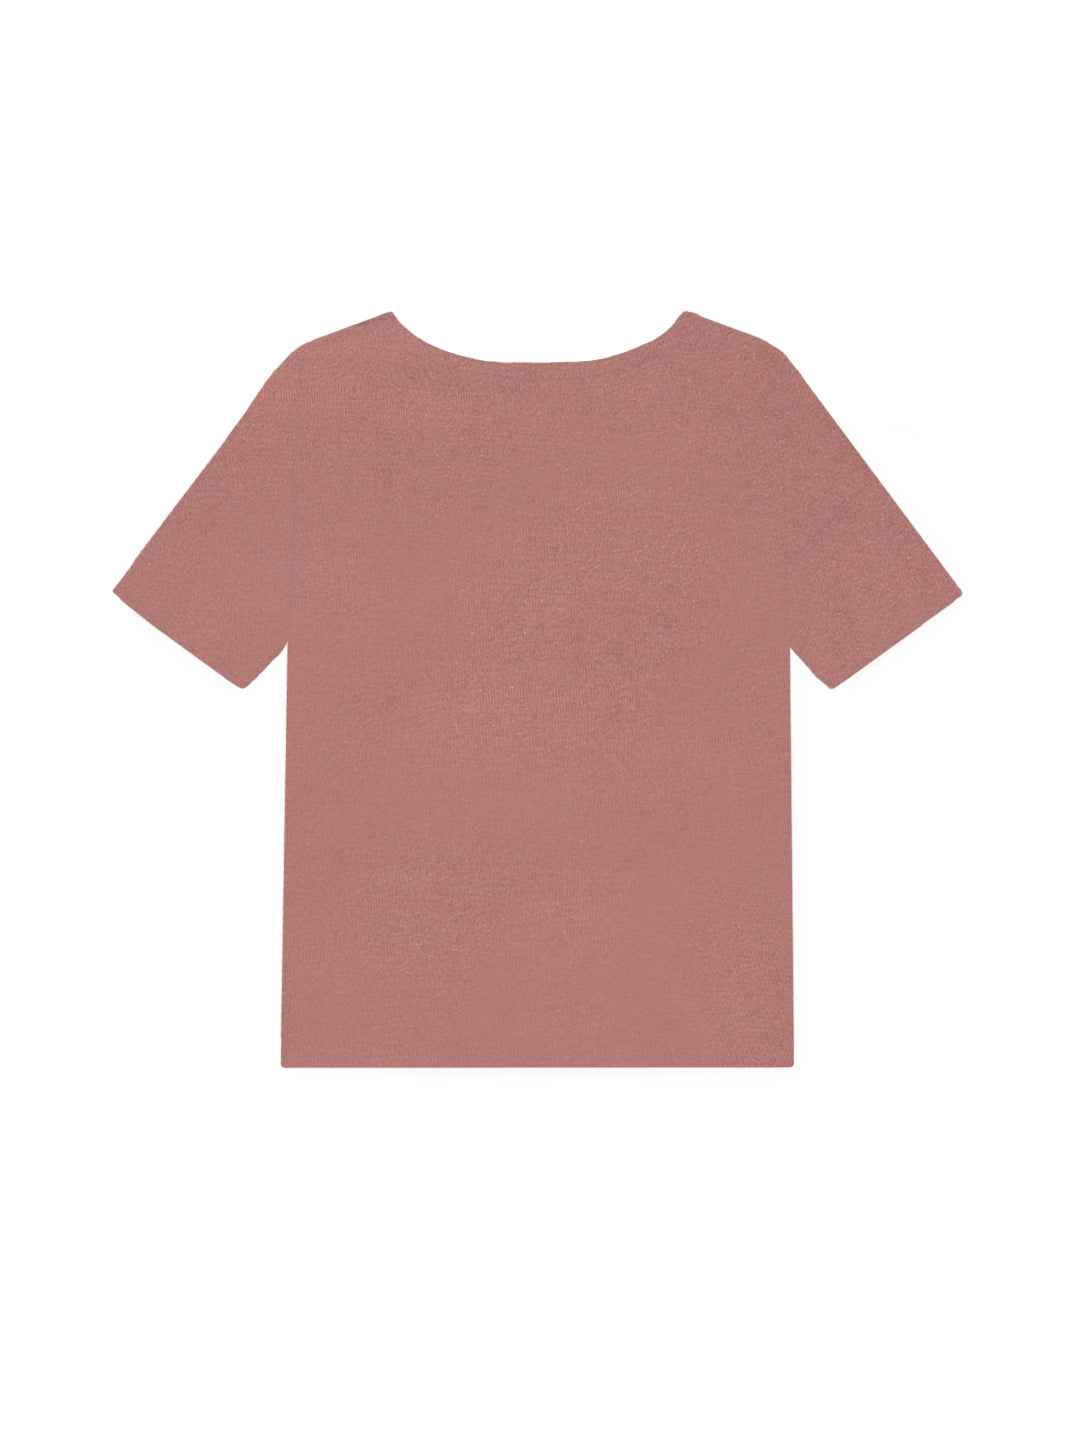 TWOTHIRDS Womens Tee: Eubea - Cedar Wood back